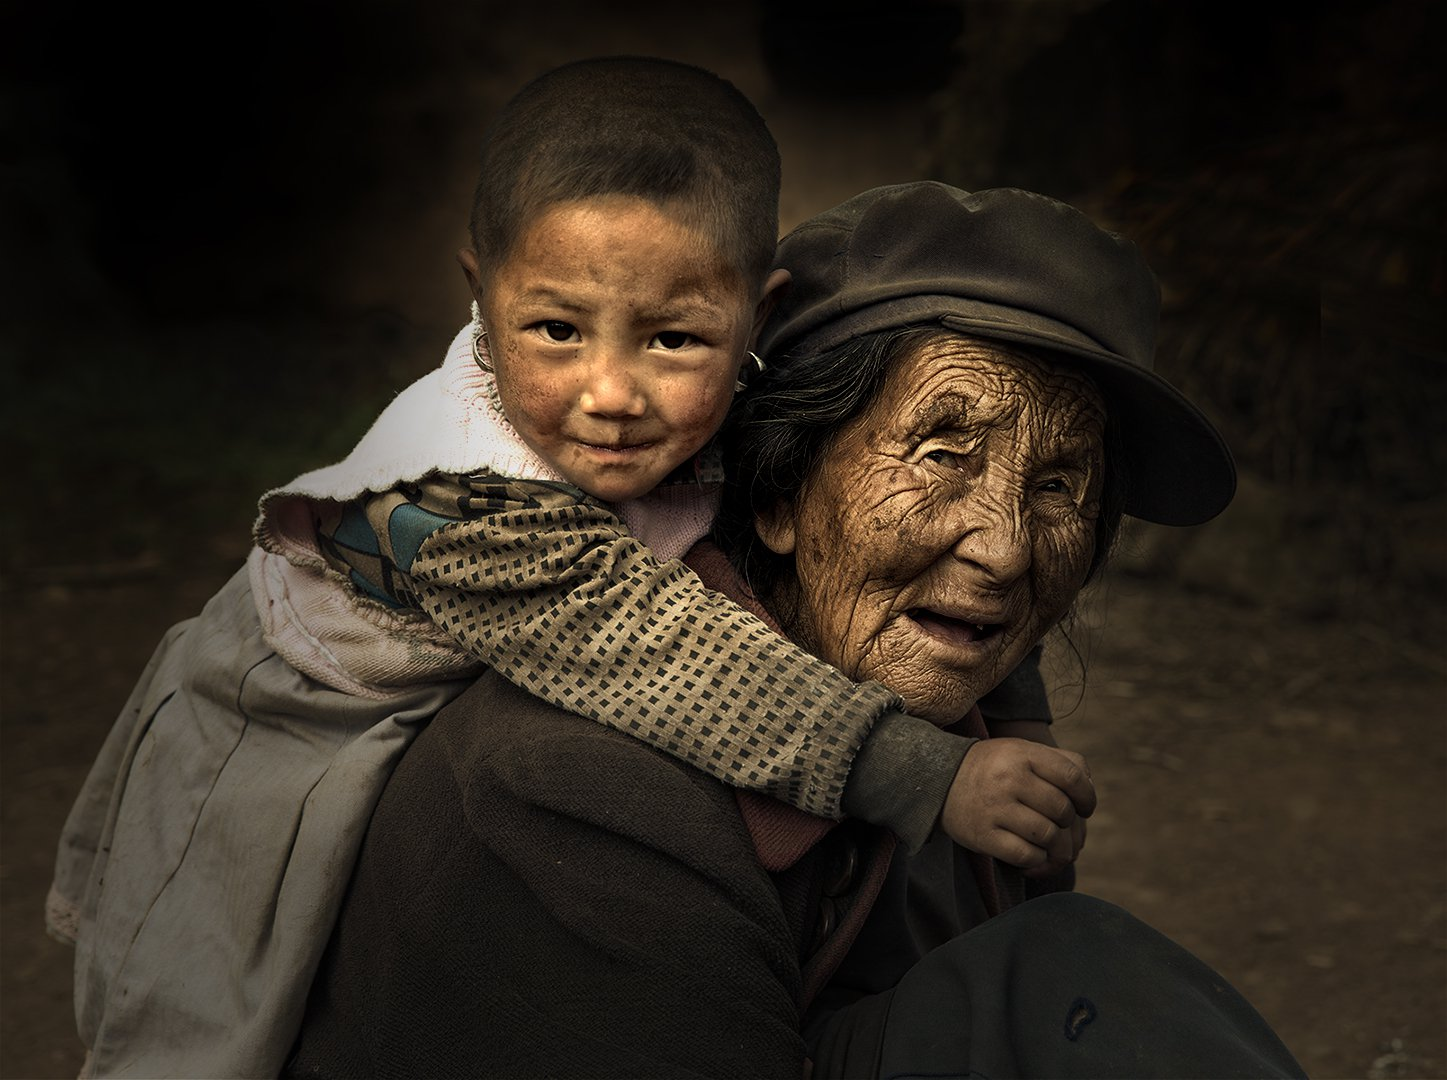 Grand Smile, © Wenyuan Li, United States, Campina Exhibitions Bronze Medal, Onyx International Exhibition of Photography